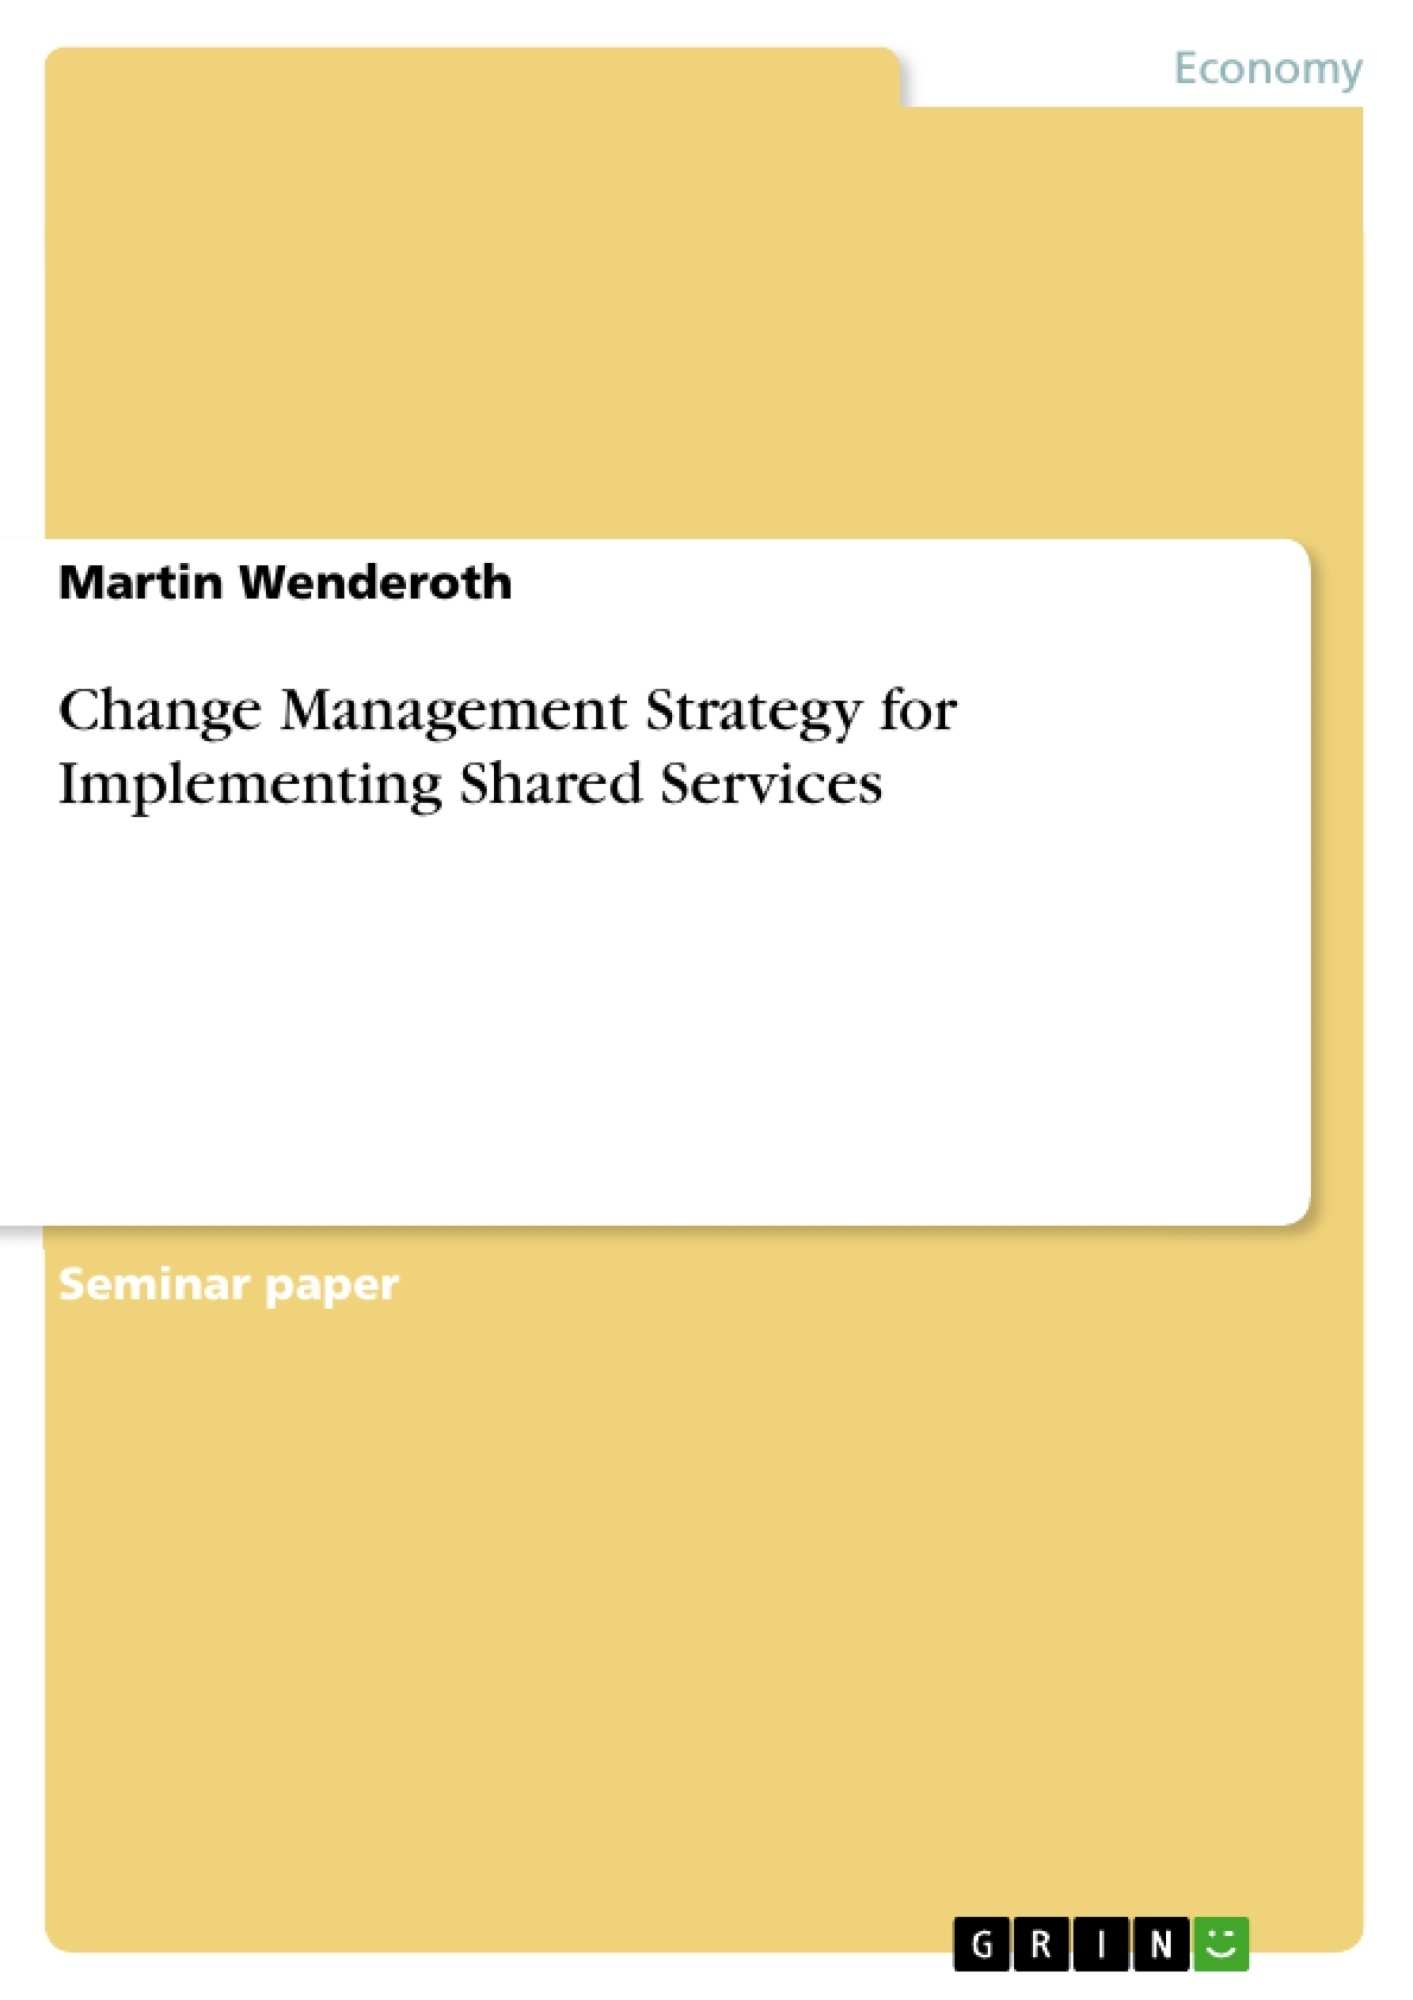 Title: Change Management Strategy for Implementing Shared Services